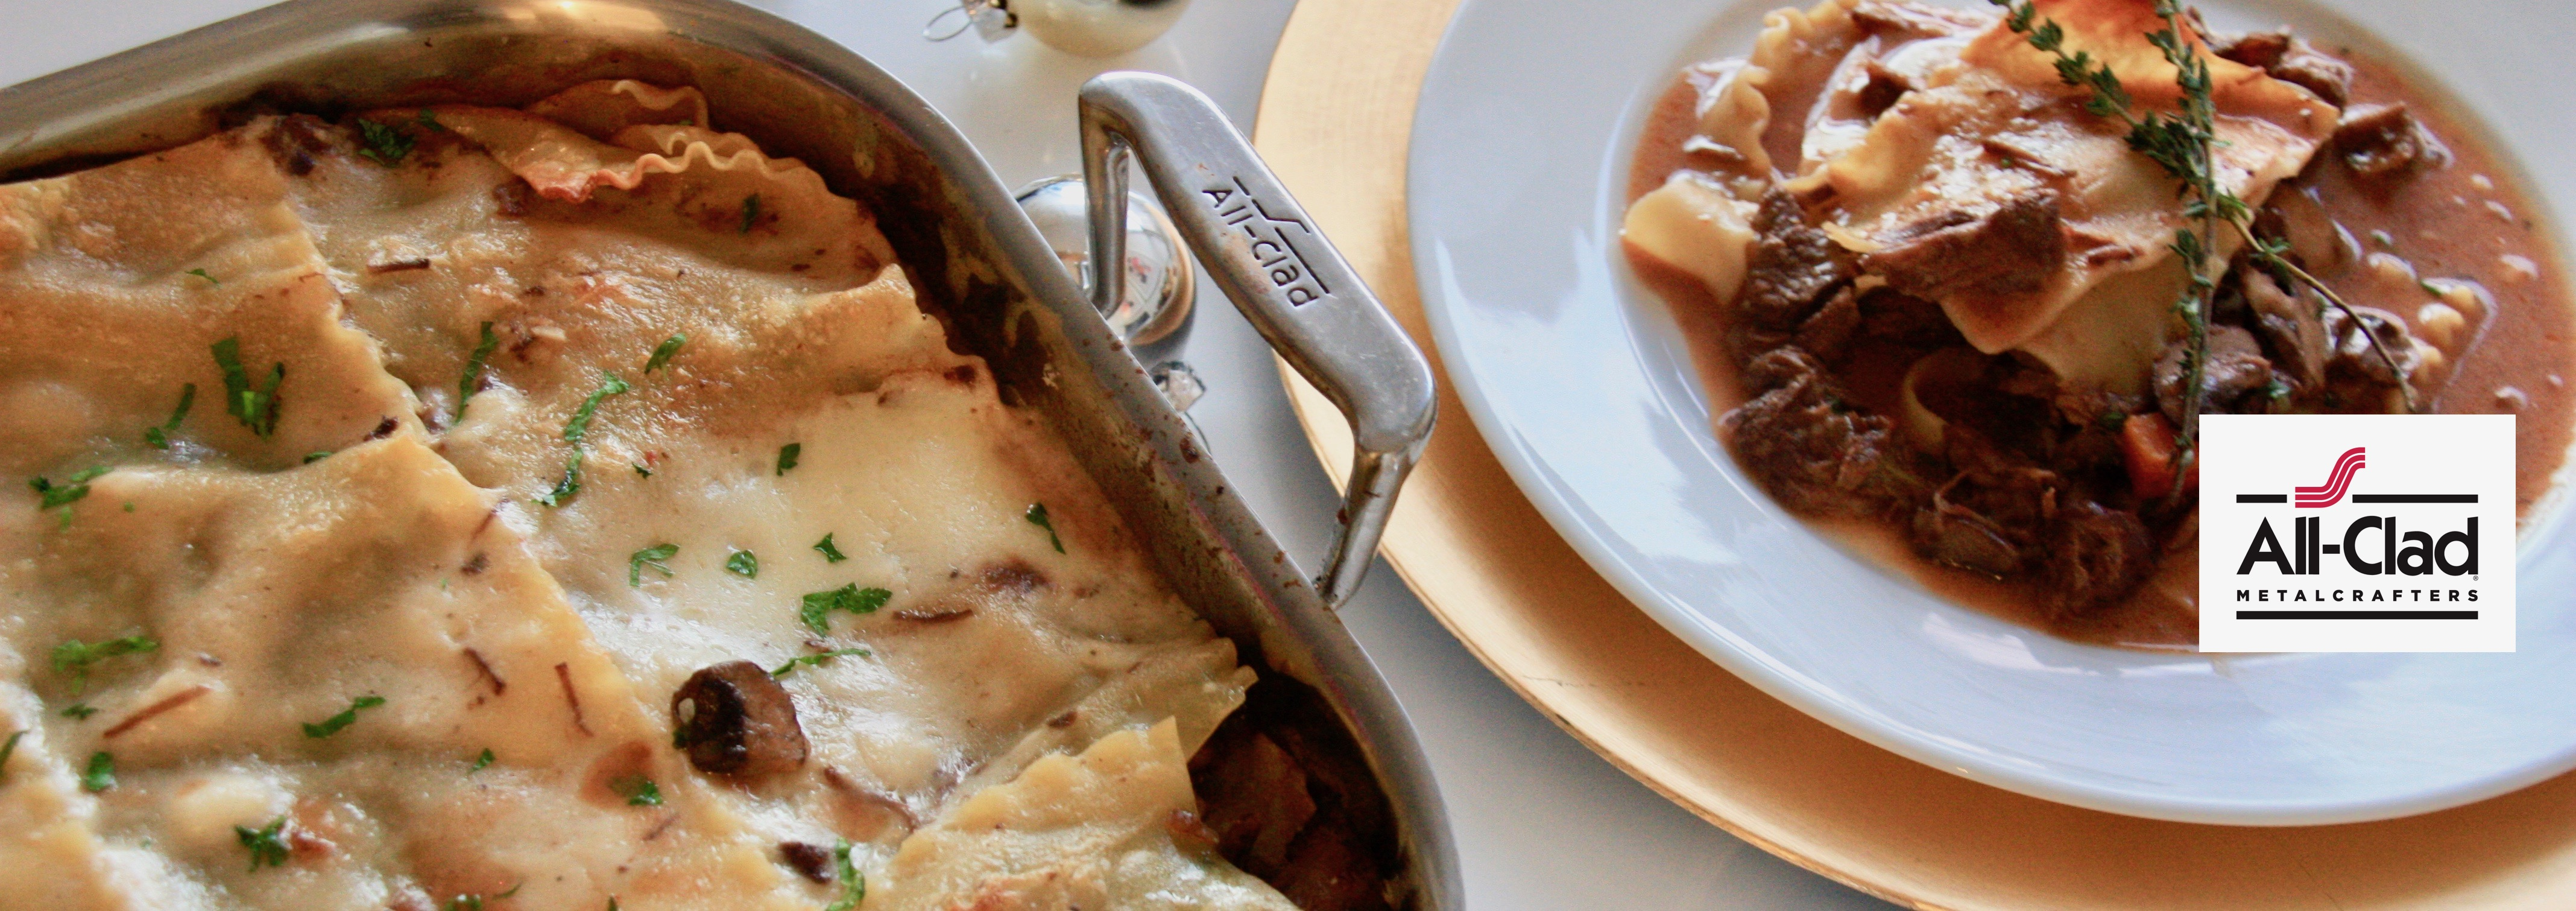 Braised Short Rib and Mushroom Lasagna (Partnership with All-Clad)